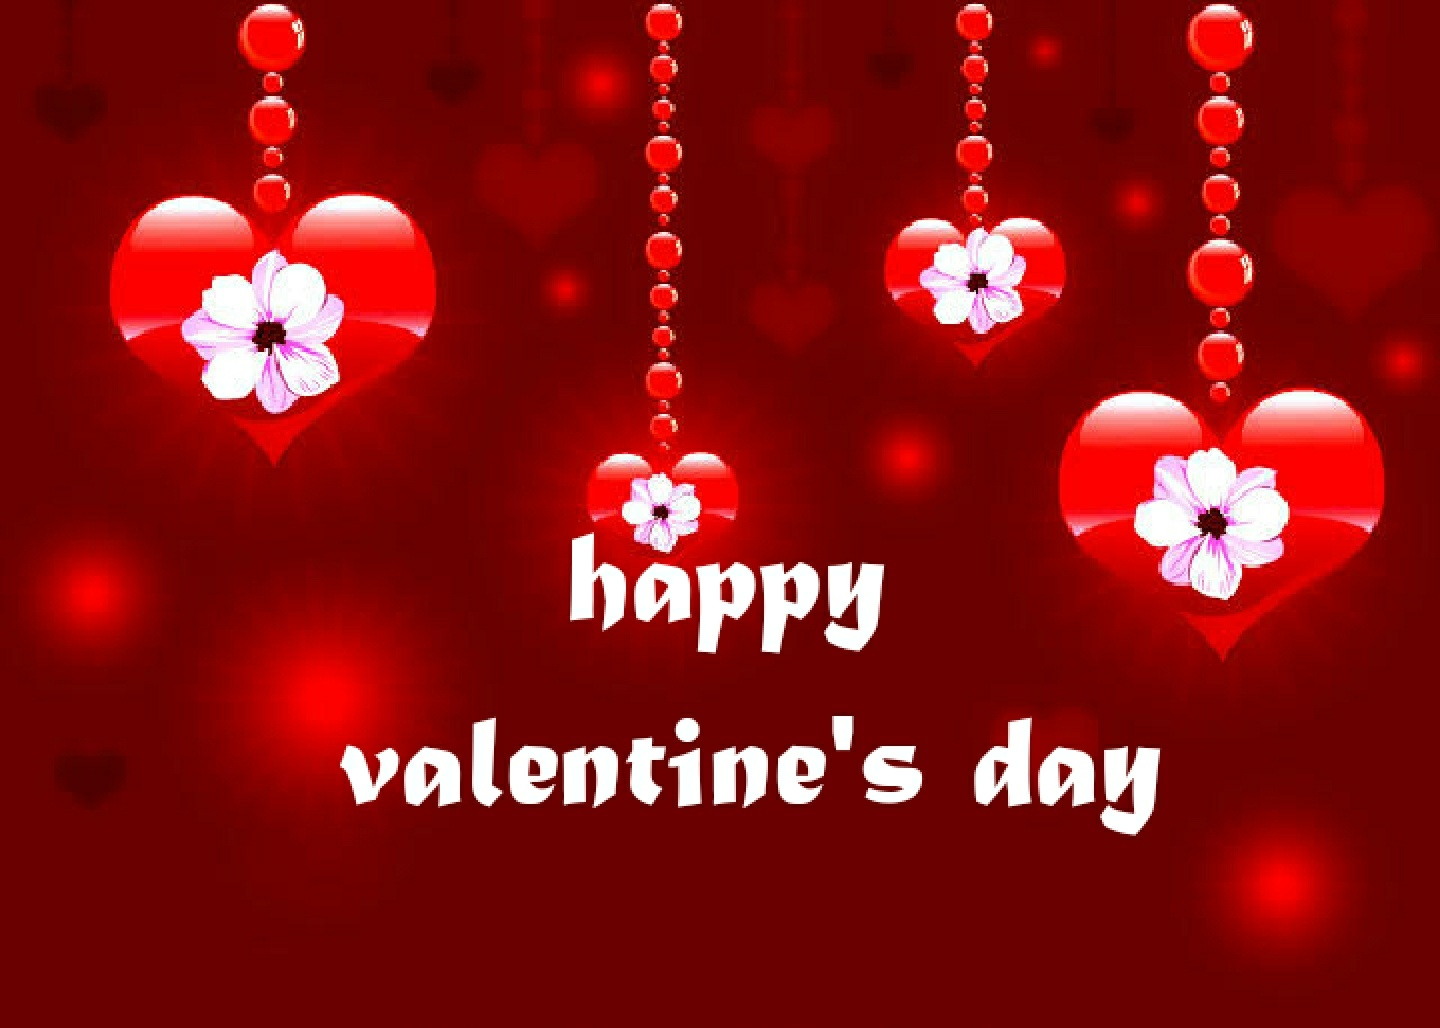 Christian Valentine S Day 2019 Valentine Day Quotes